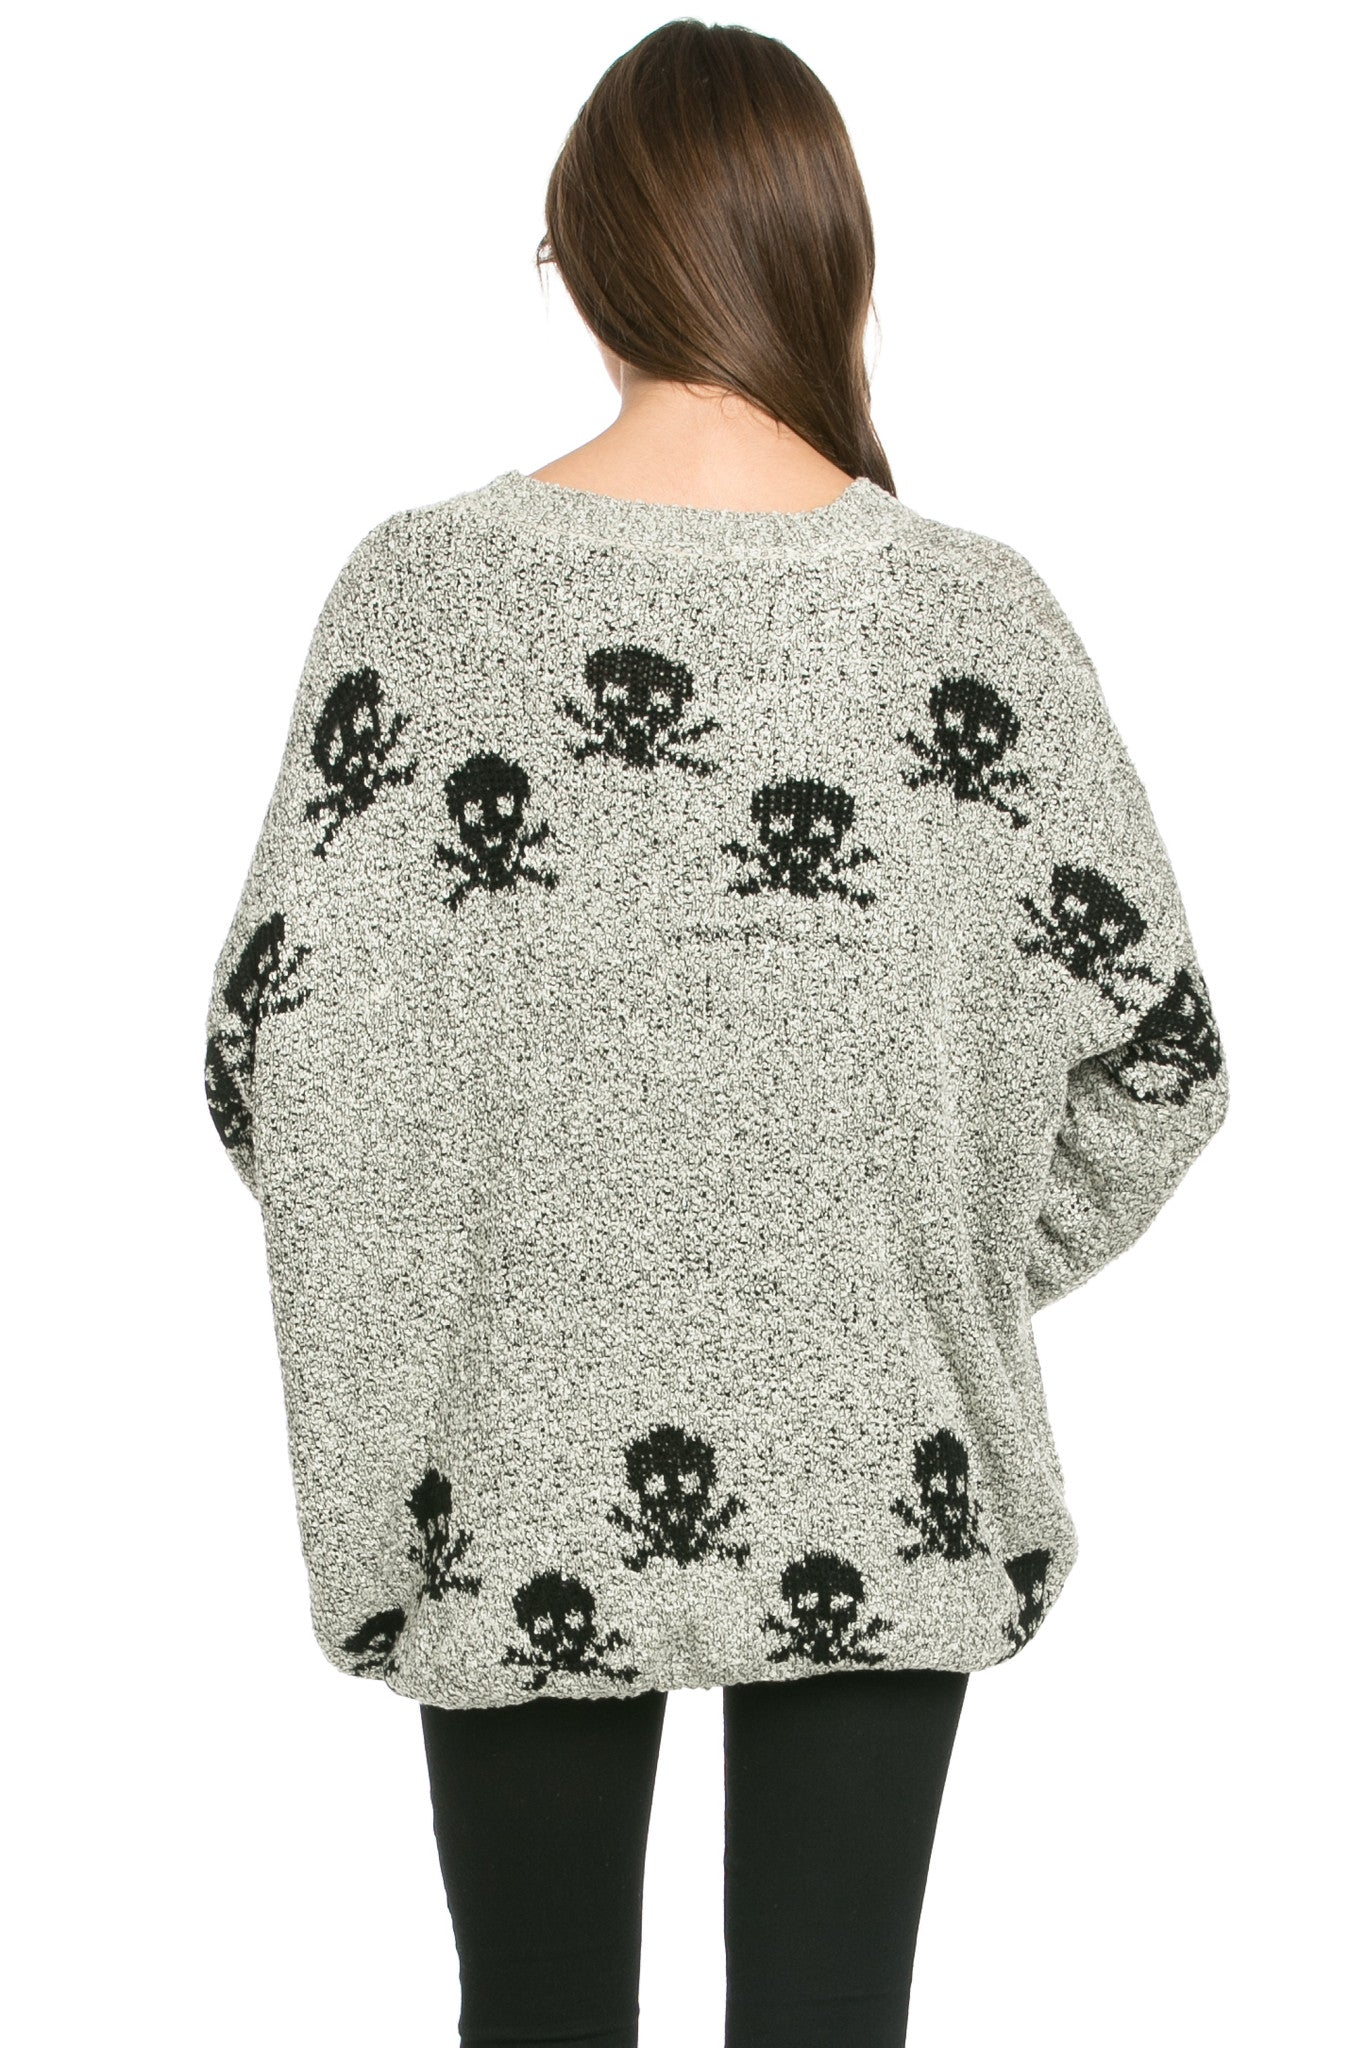 Skulls All Around Oversized Sweater Beige - Sweaters - My Yuccie - 5